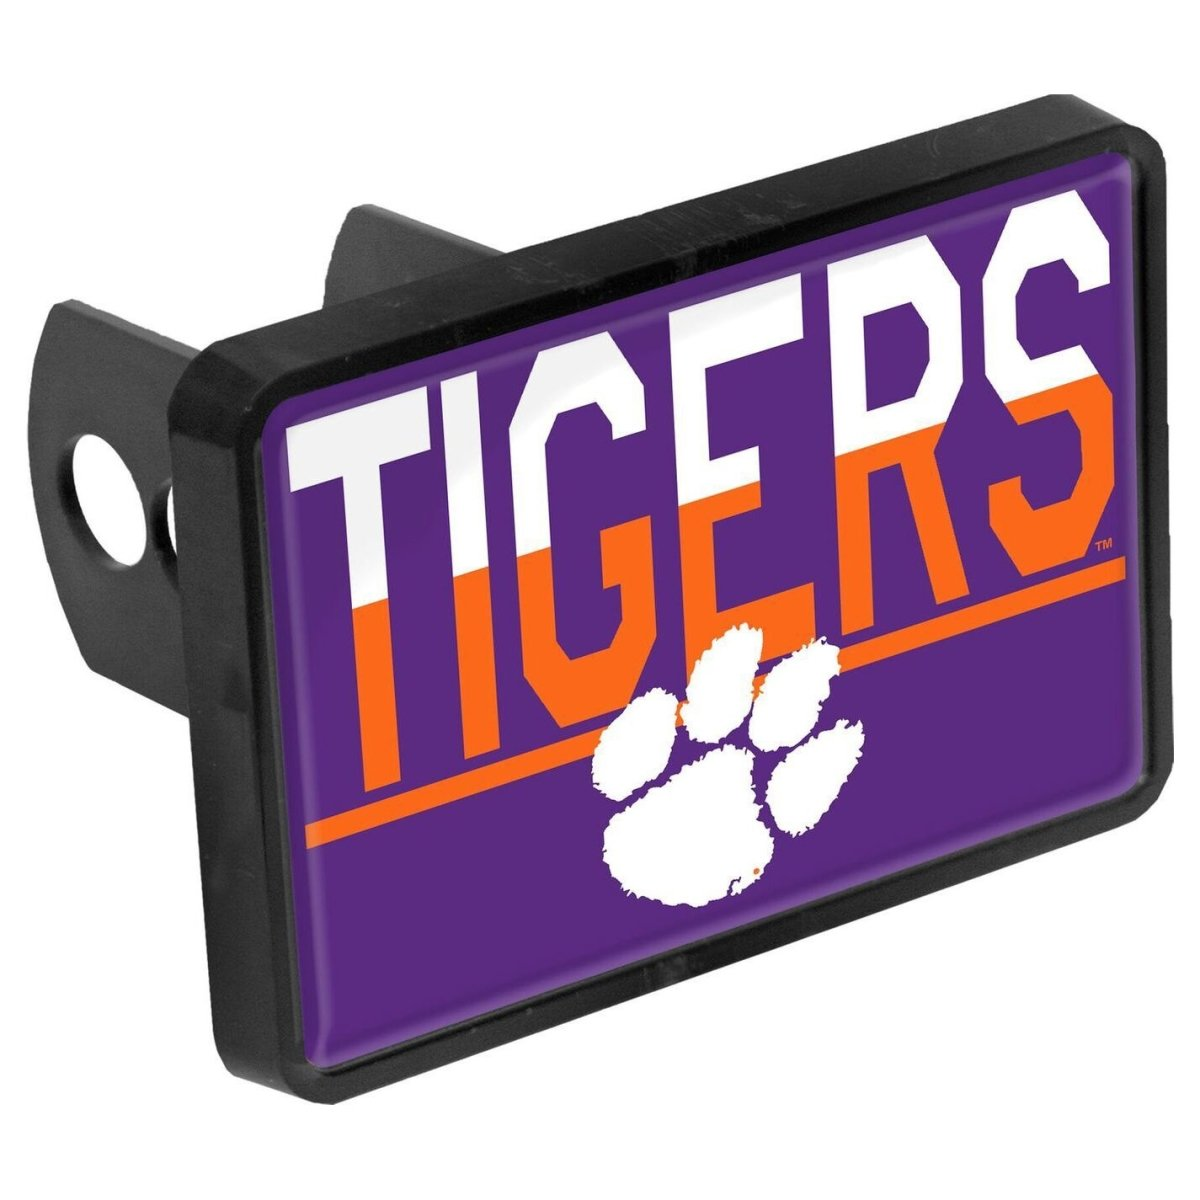 Stockdale Clemson Tigers Duo Tone Plastic Hitch Cover - Mr. Knickerbocker